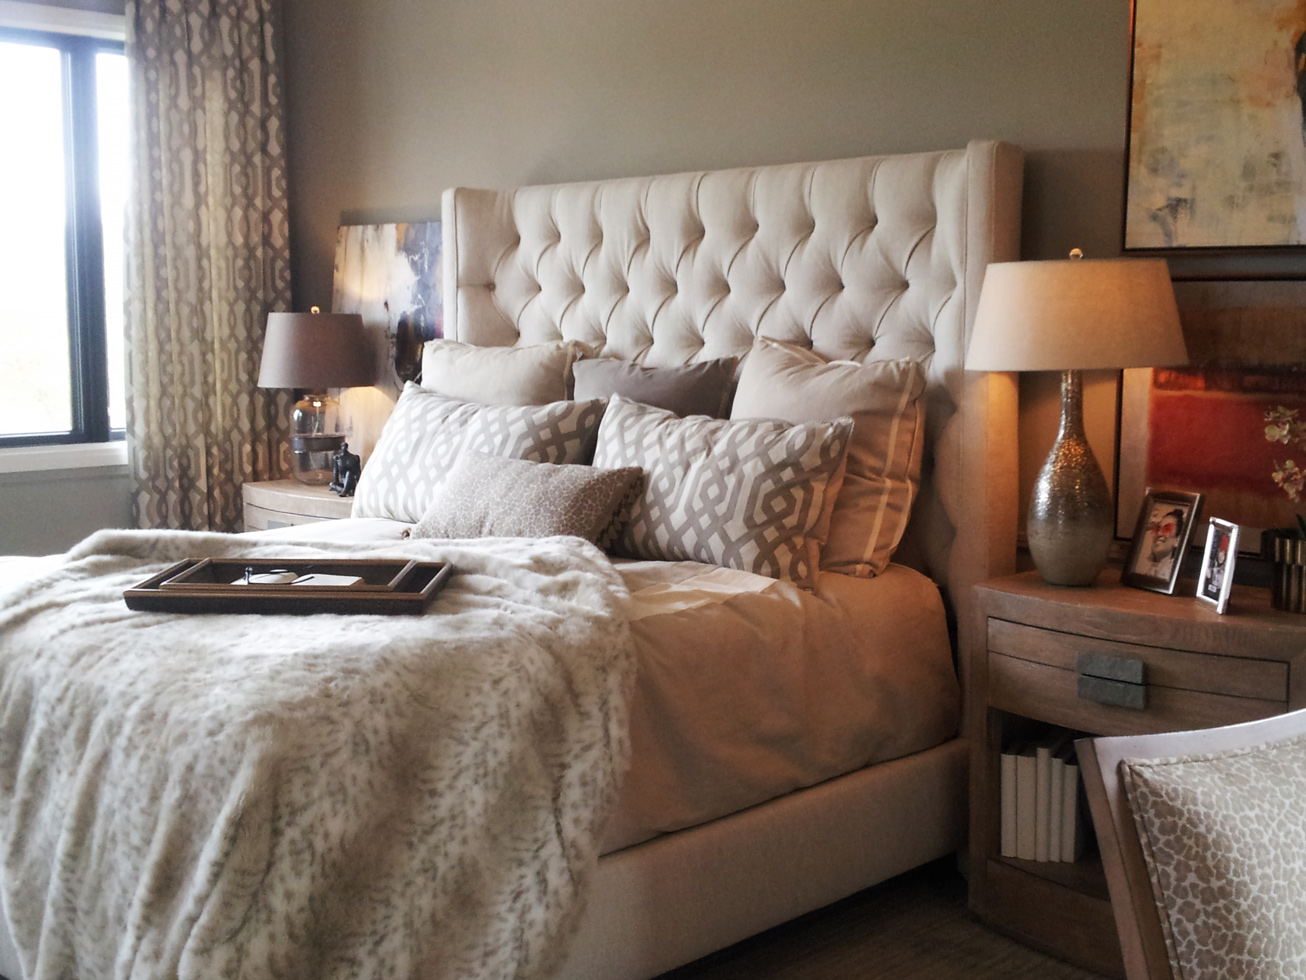 The-Room-At-Coulters-bed-interior-design.jpg